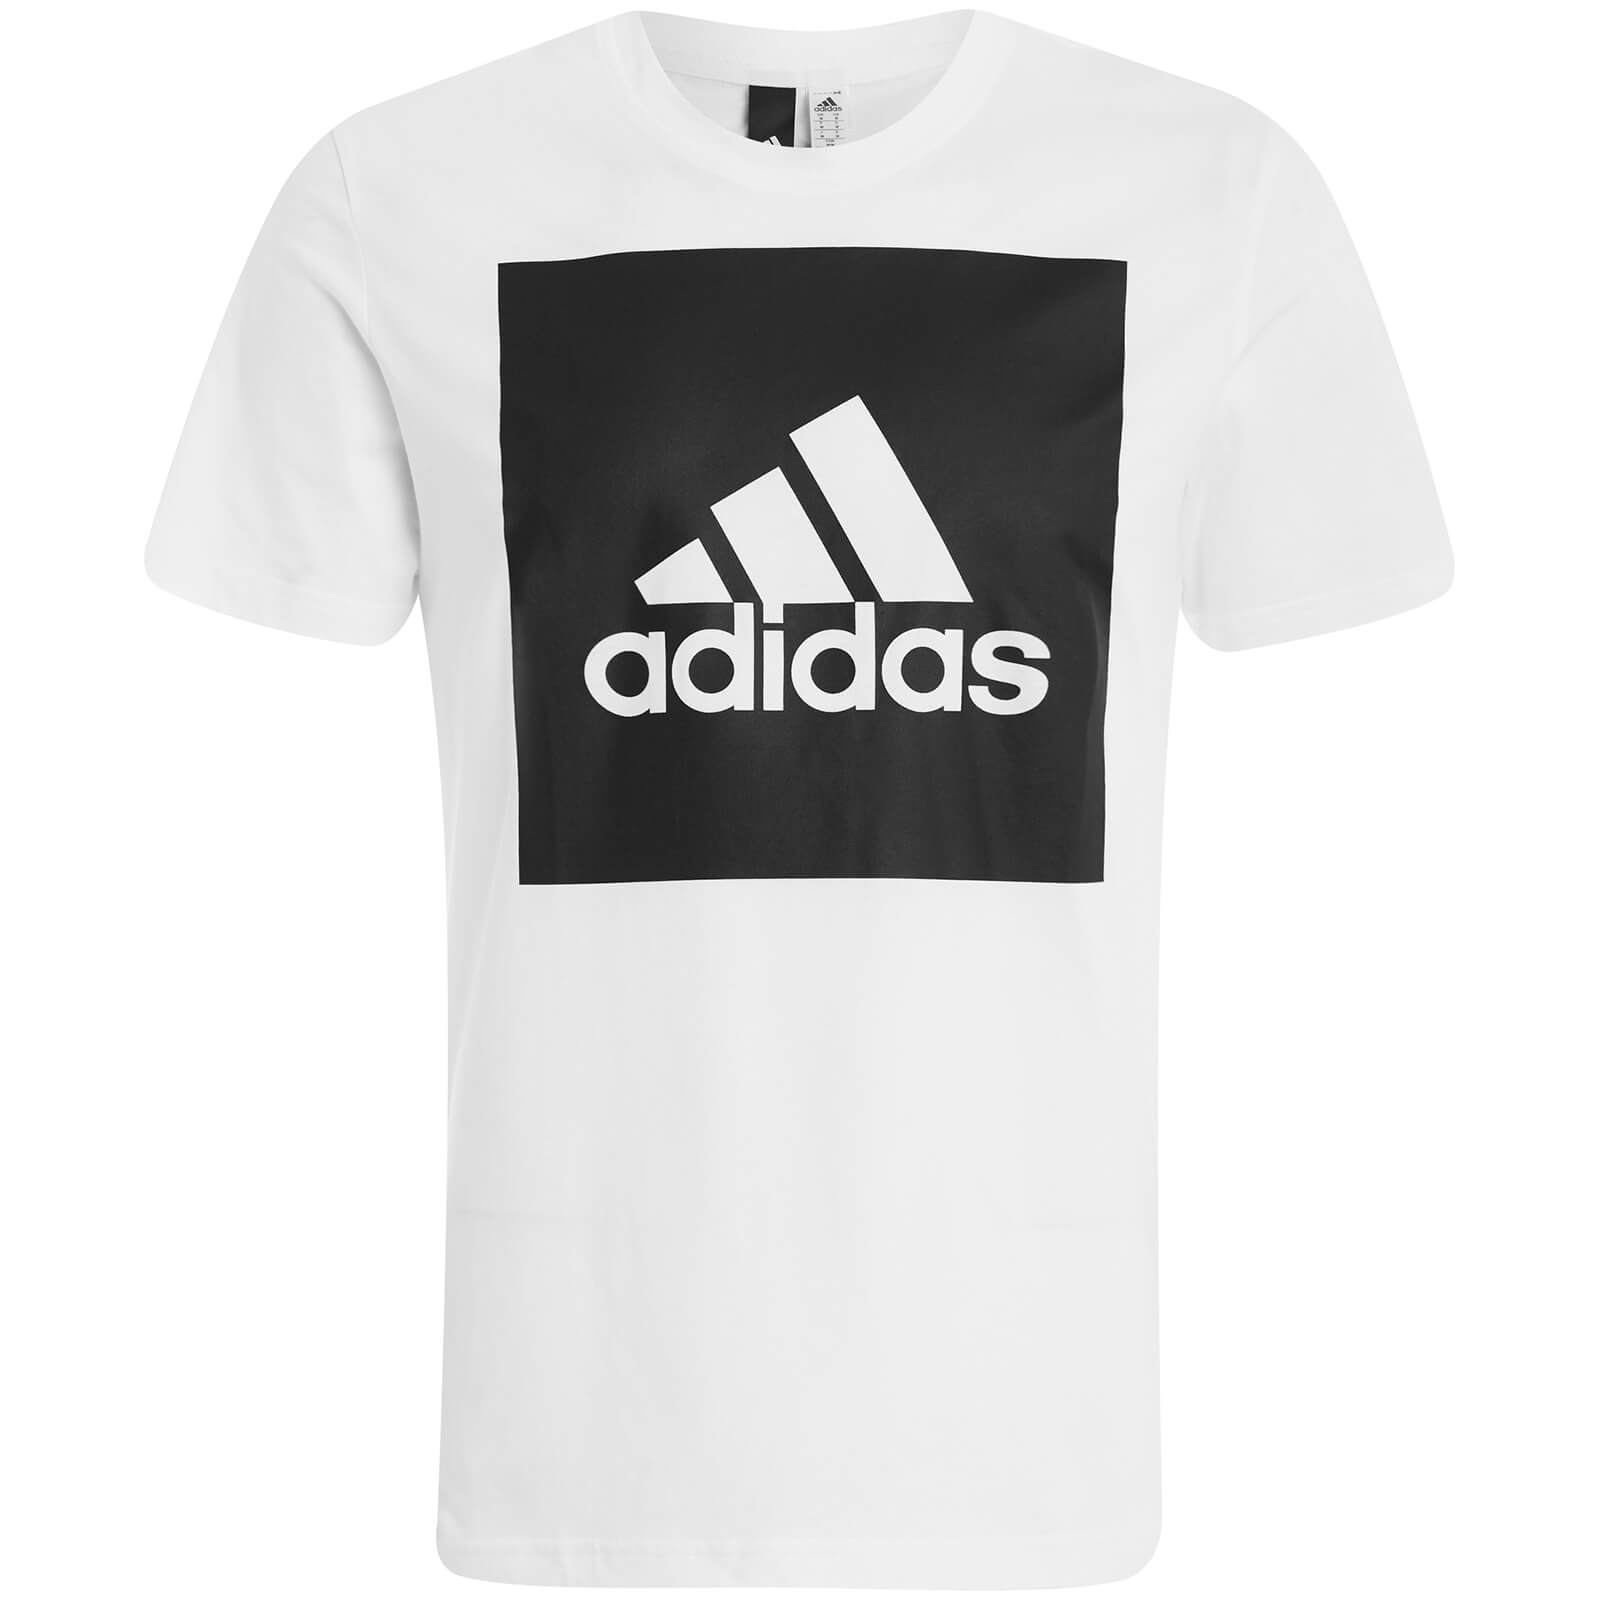 634097999f06 adidas Men's Essential Square Logo T-Shirt - White. Showing image 0 - null